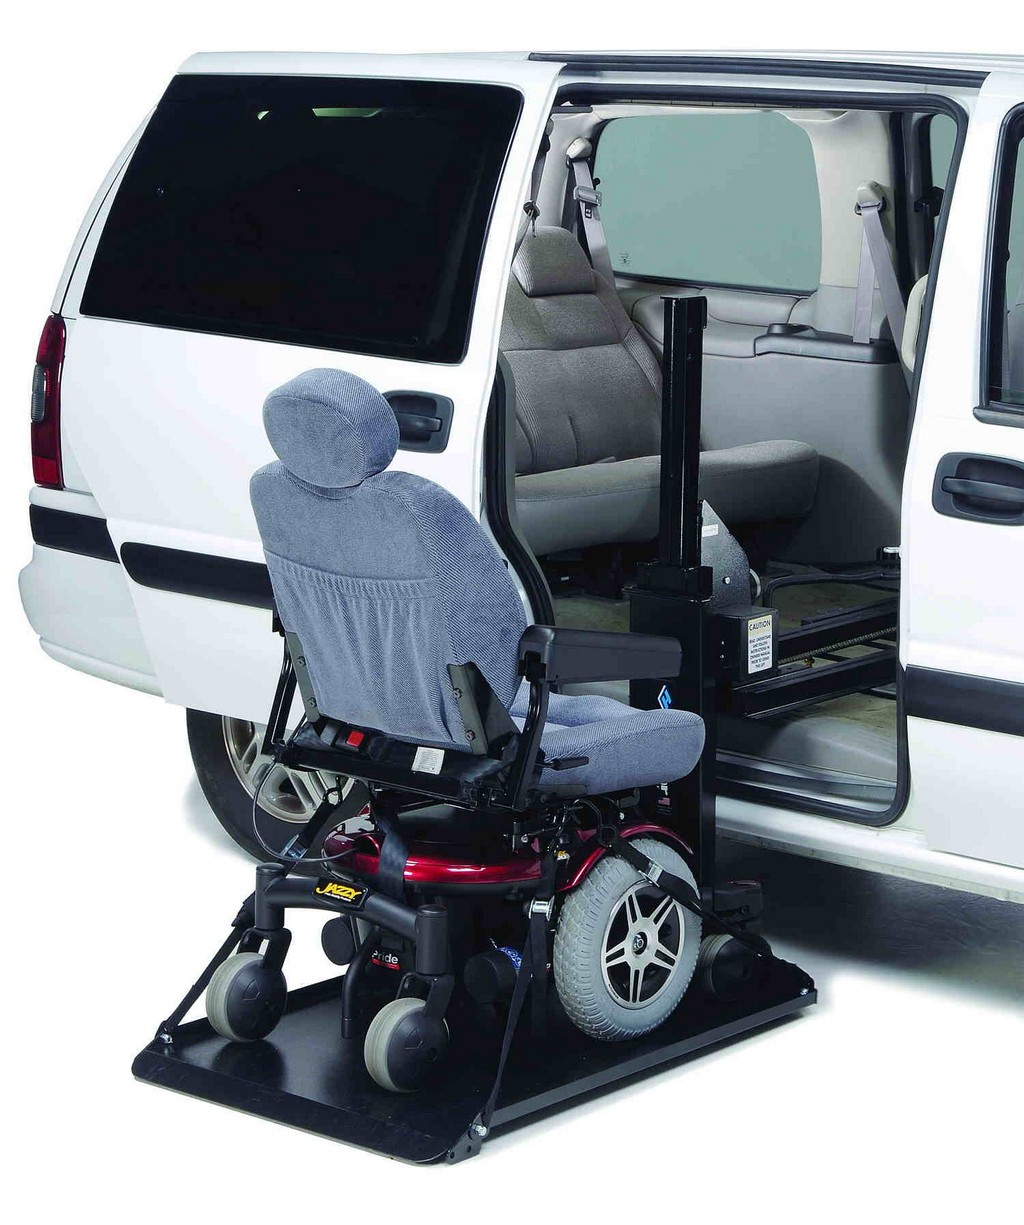 electric wheel chair ramps lifts, wheelchair lifts jax fl, wheel chair stair lifts, authorized power wheelchair lift dealer